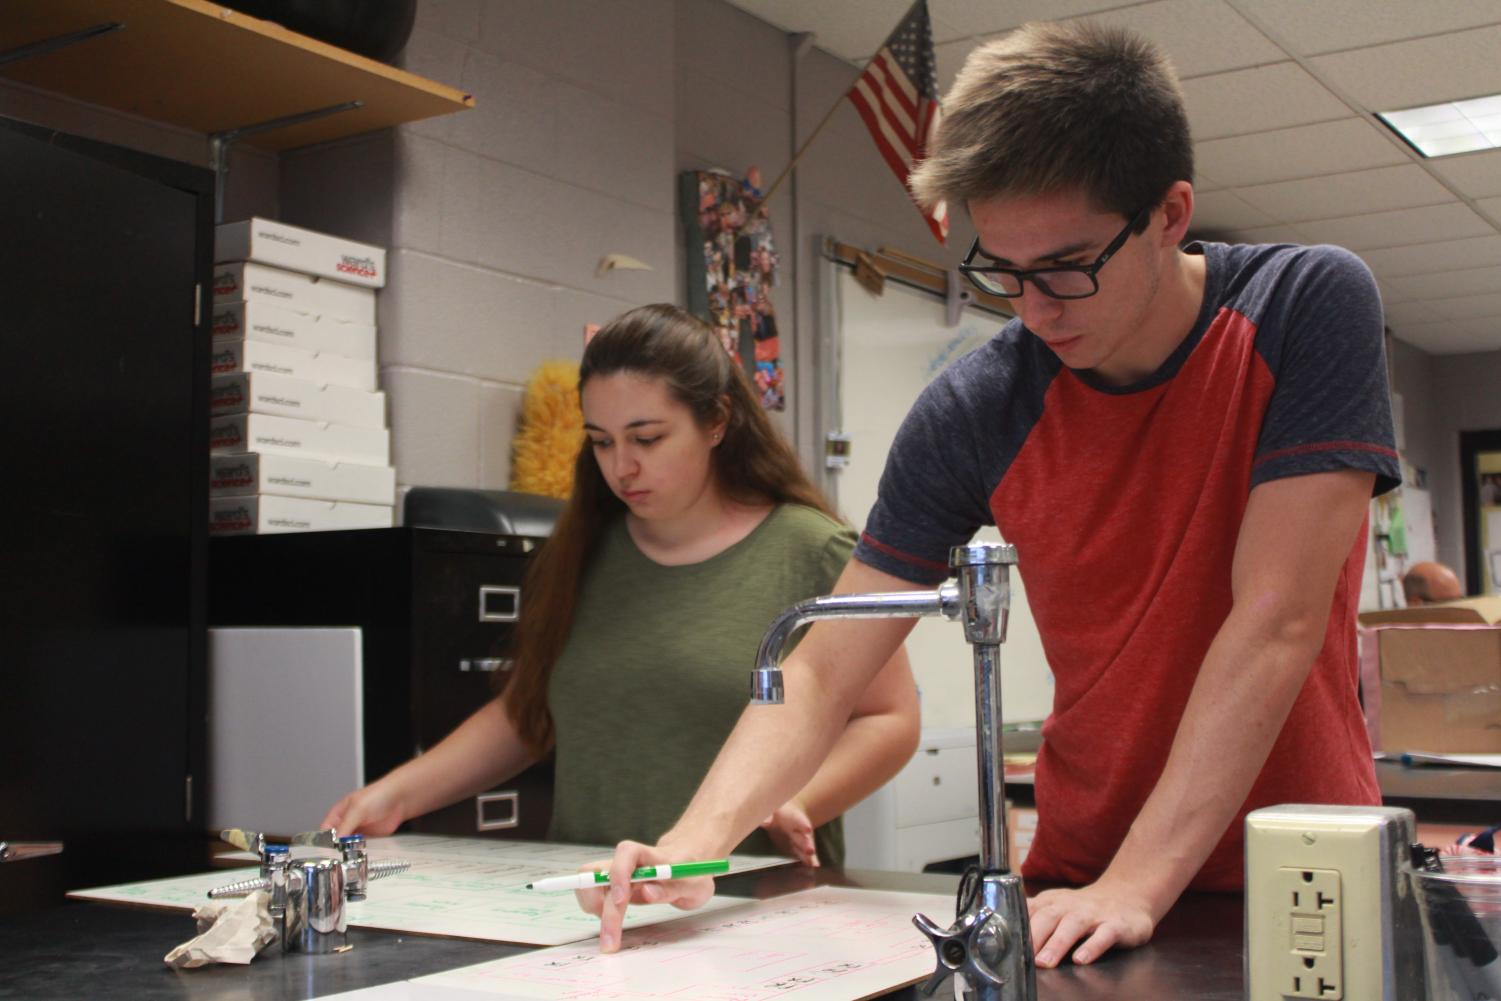 Cooper Redington and Sophia Couteranis work on designing an emergency room floor plan in their Biomedical Innovations class. To take this class they both must travel from their school, FHC, to FHN due to the class not being offered there. This is the first year BI has been offered at FHN.